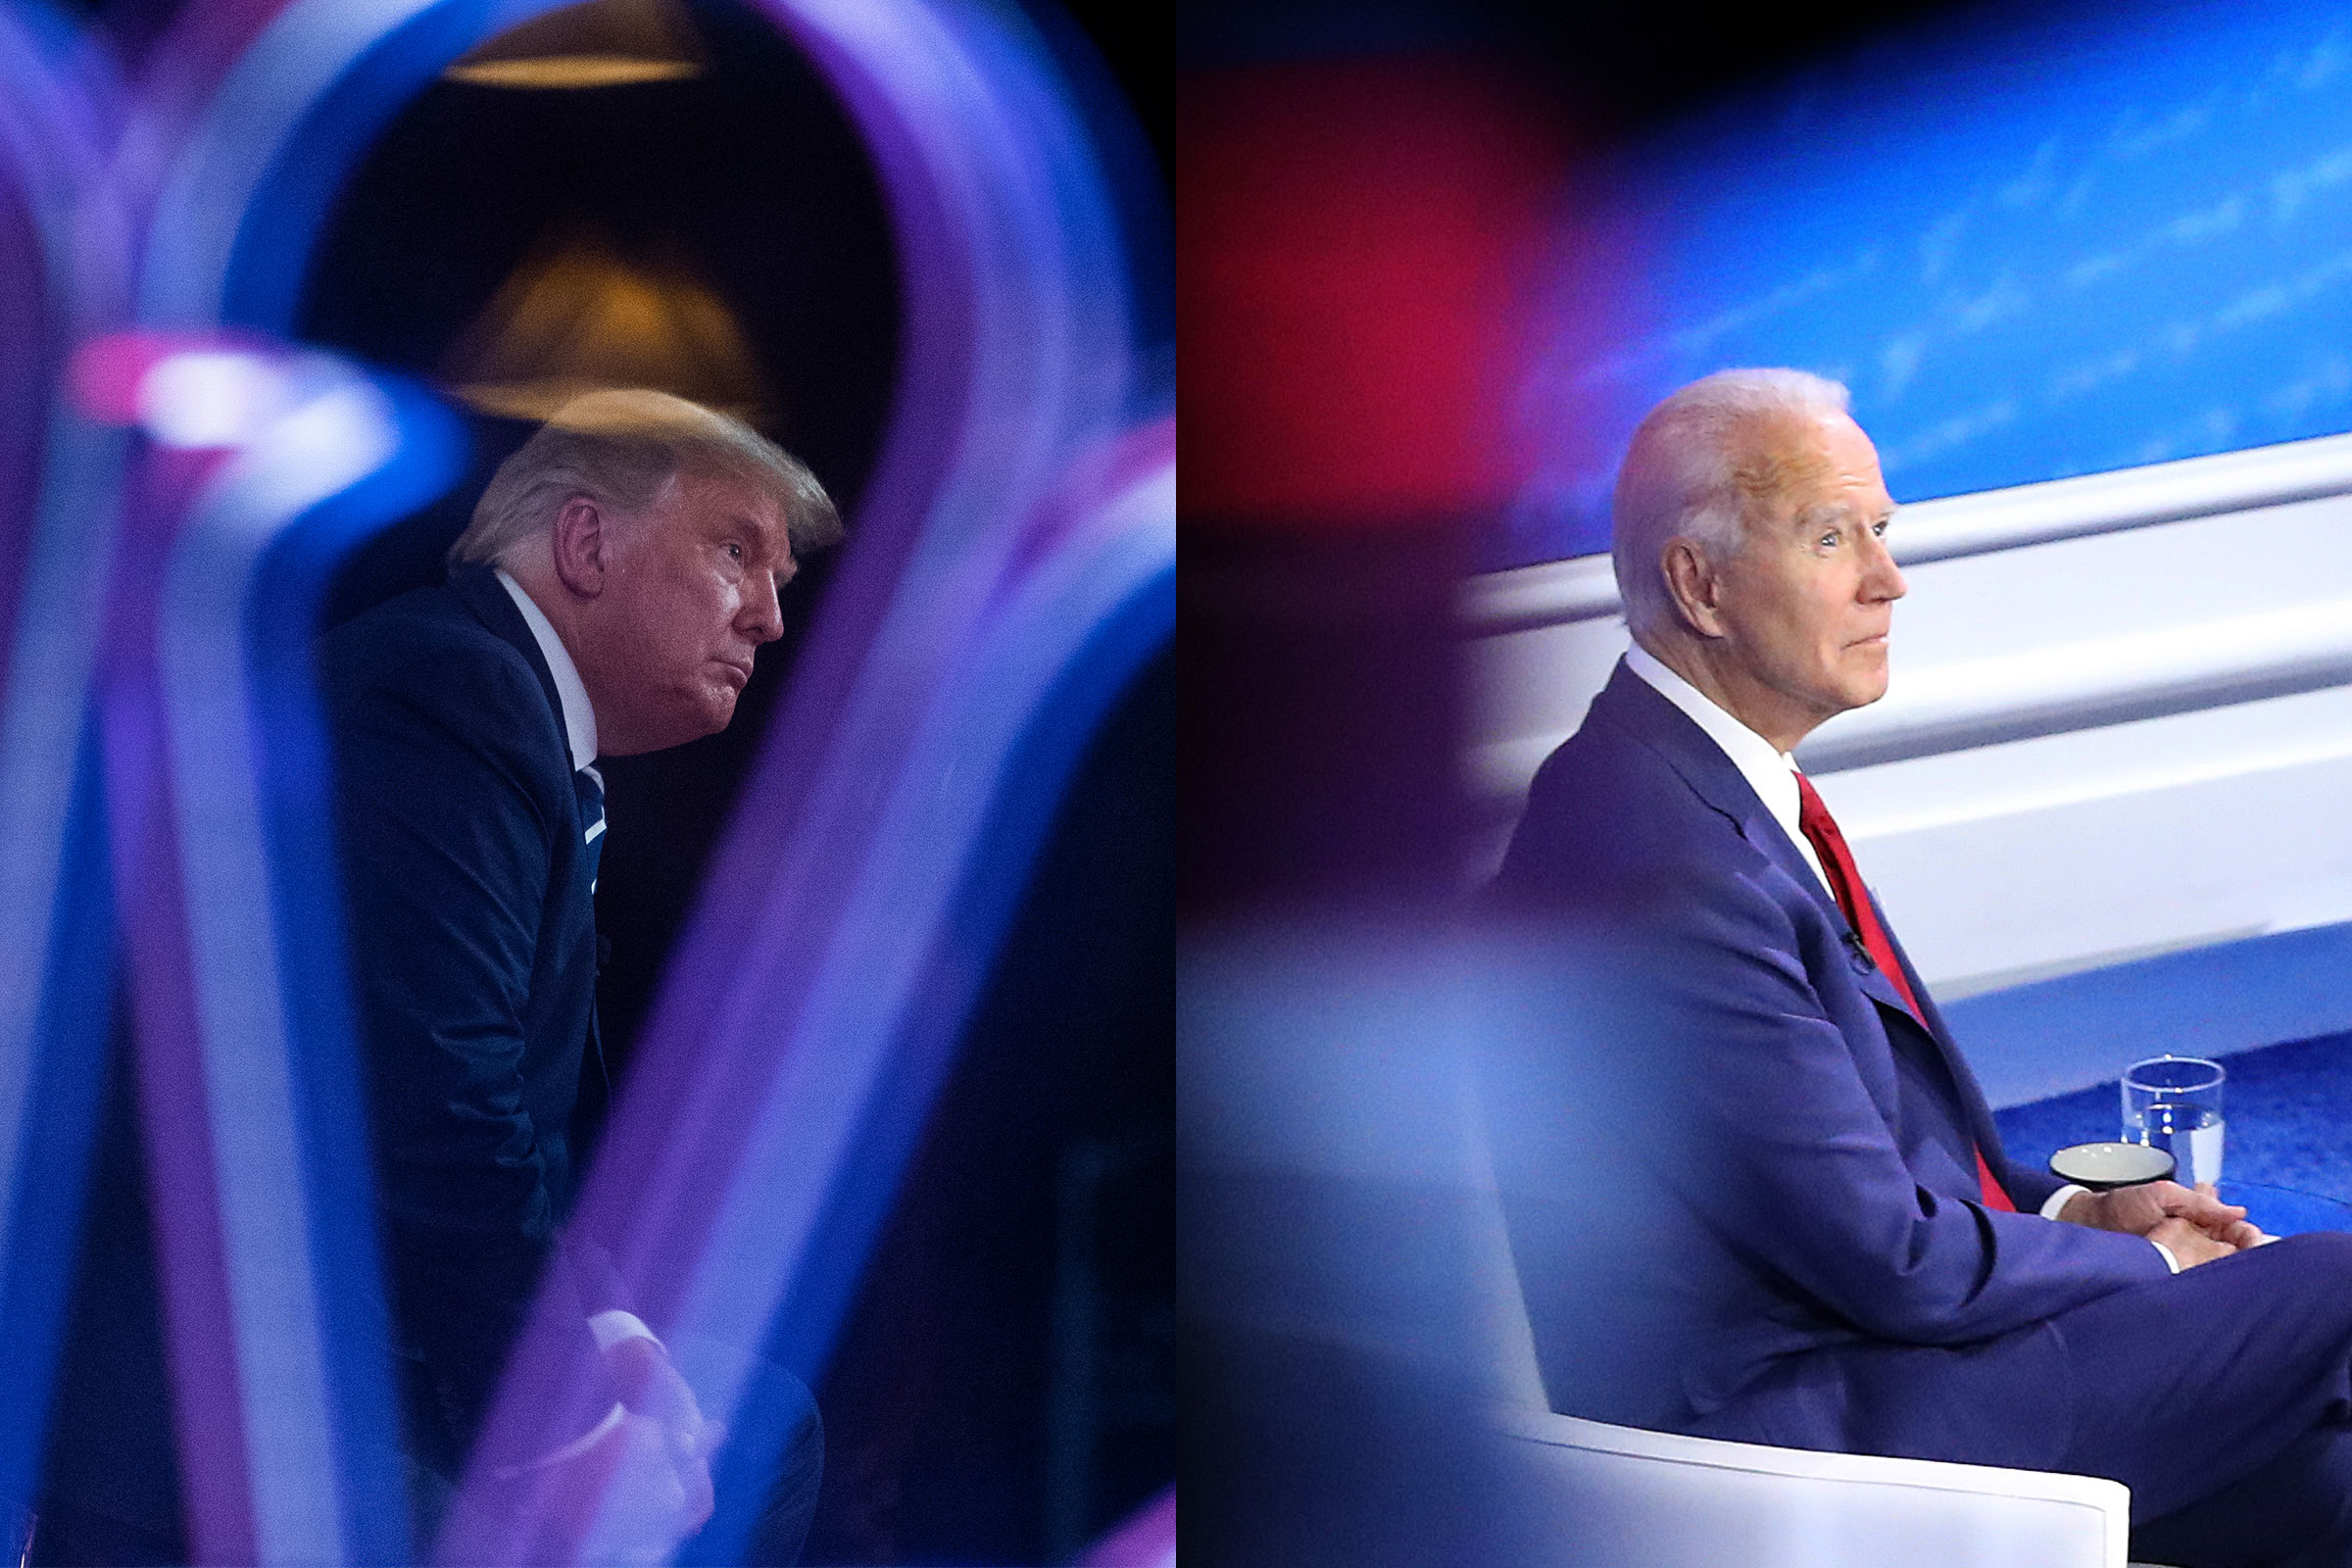 President Donald Trump speaks during an NBC News Town Hall; Democratic presidential nominee Joe Biden participates in a Town Hall format meeting with ABC News